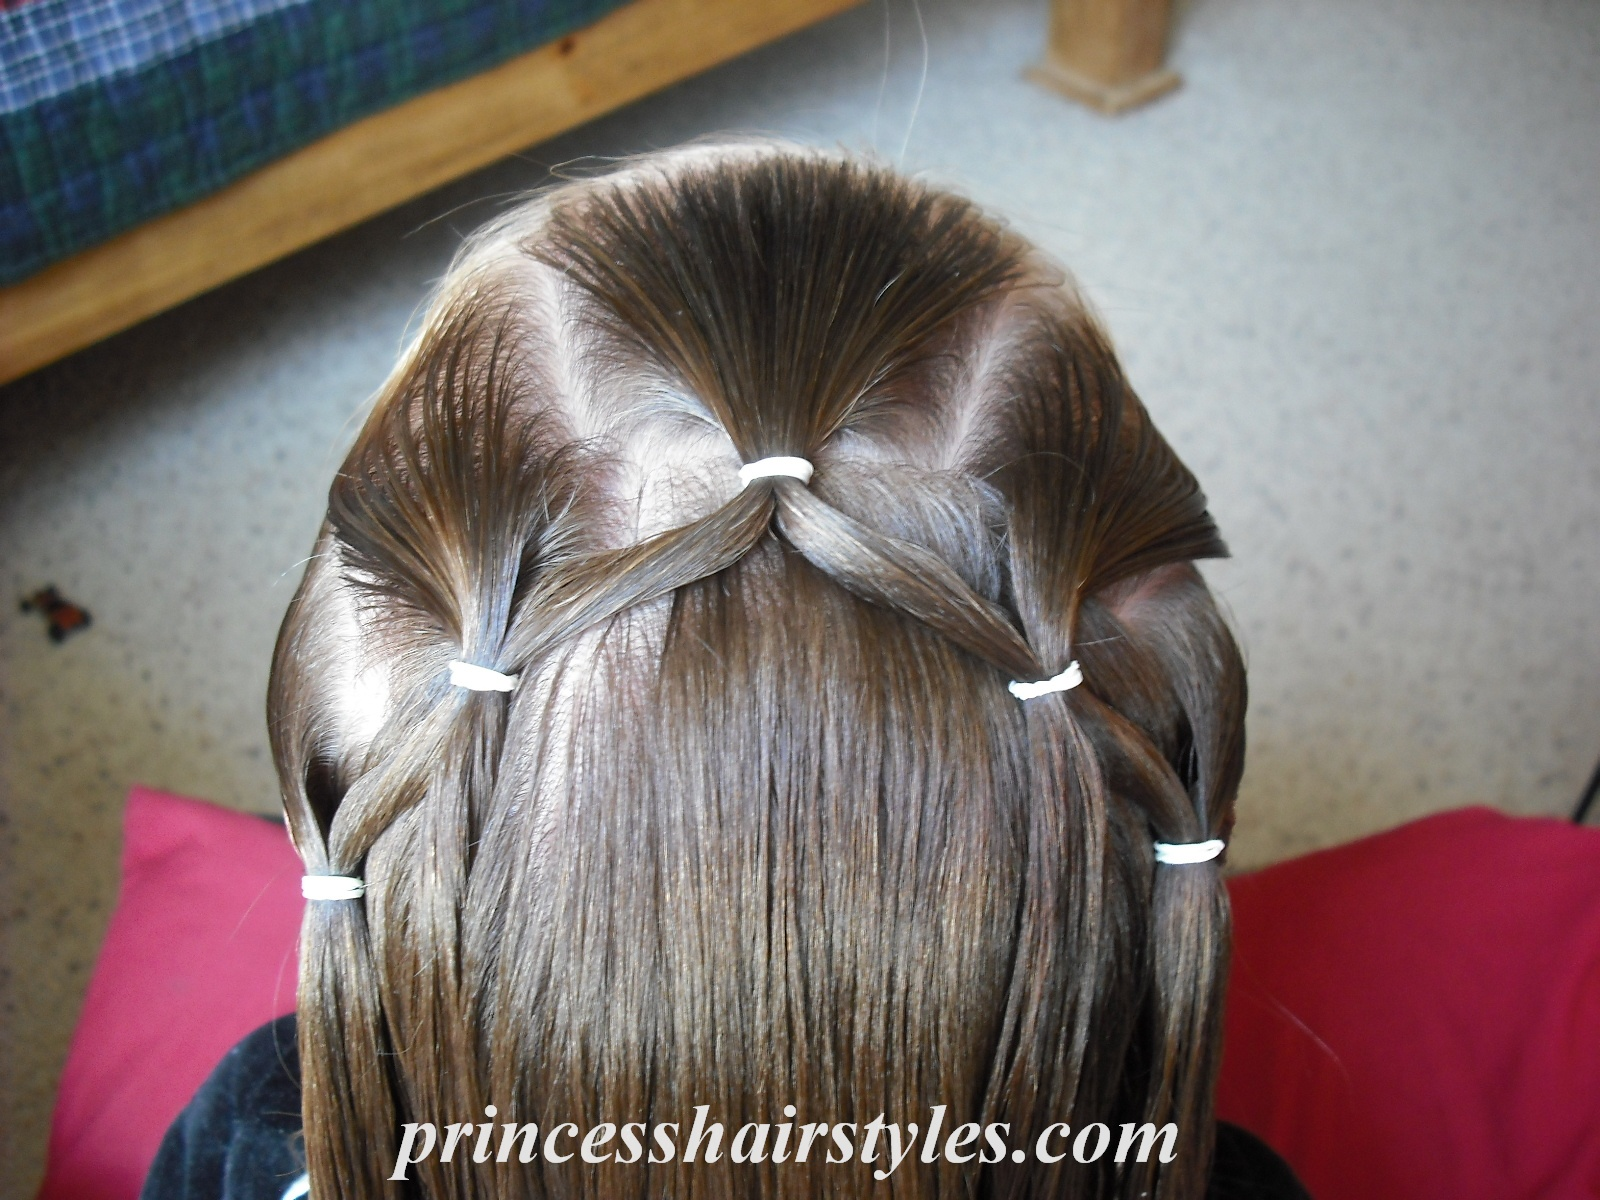 Groovy Flower Girl Hairstyle Hairstyles For Girls Princess Hairstyles Short Hairstyles Gunalazisus